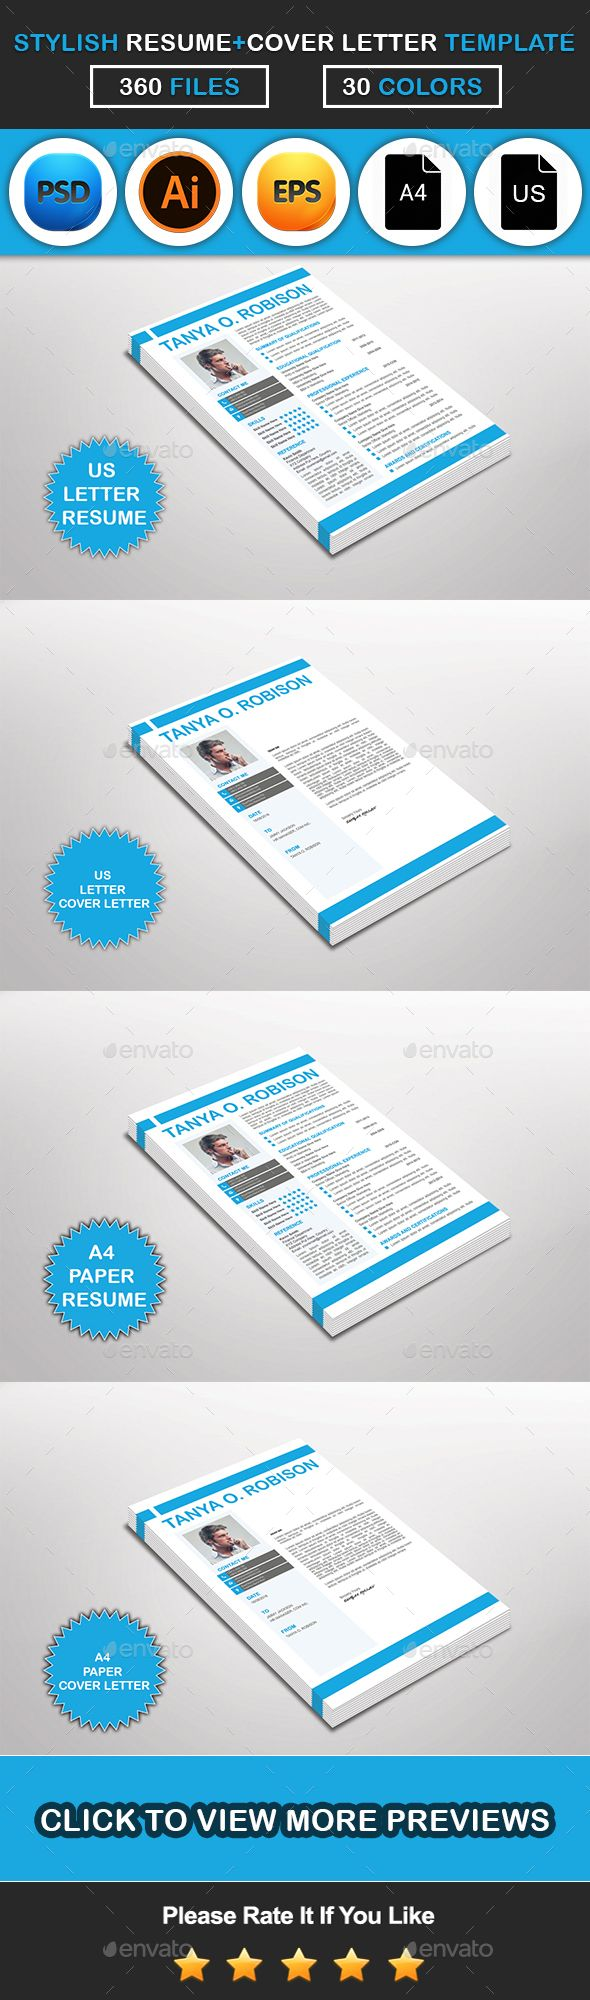 best 25 resume cover letter template ideas on pinterest resume